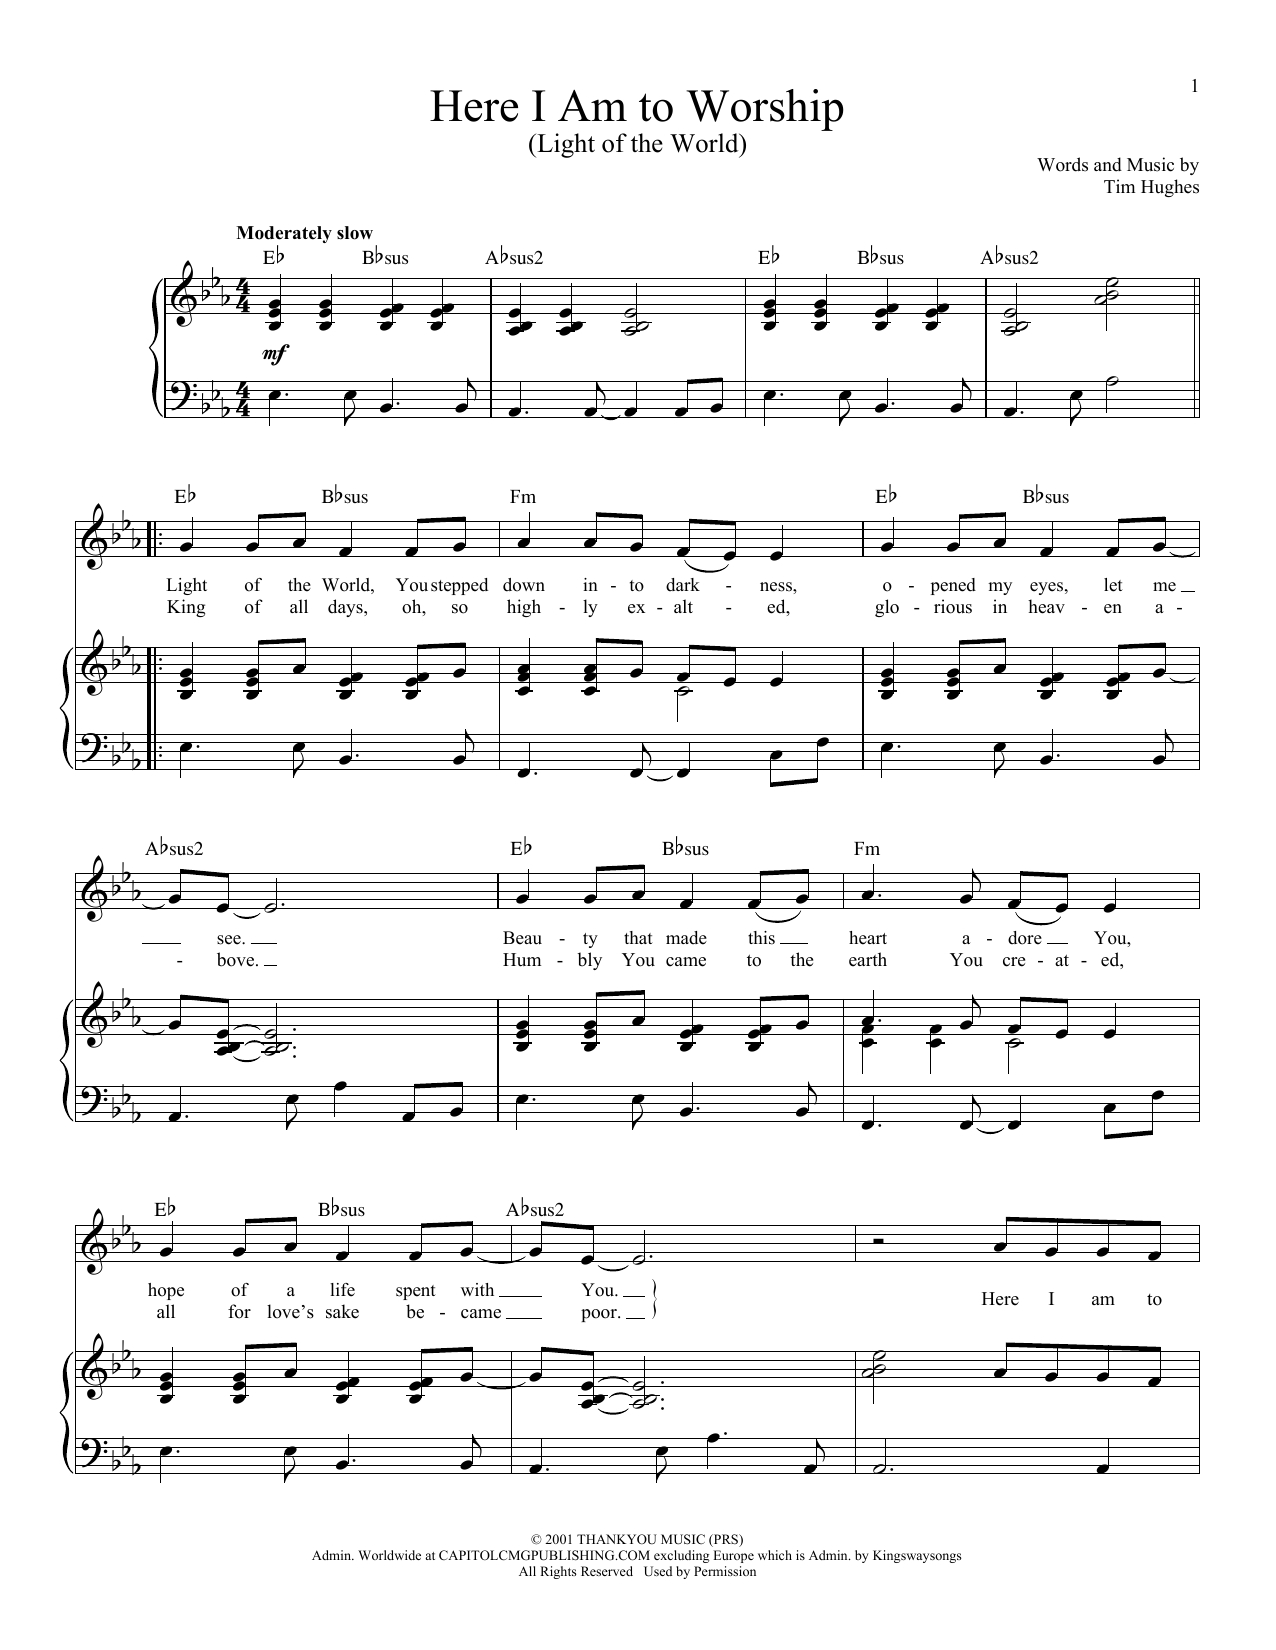 Here I Am To Worship Chords Tim Hughes Here I Am To Worship Light Of The World Sheet Music Notes Chords Download Printable Voice Sku 182965